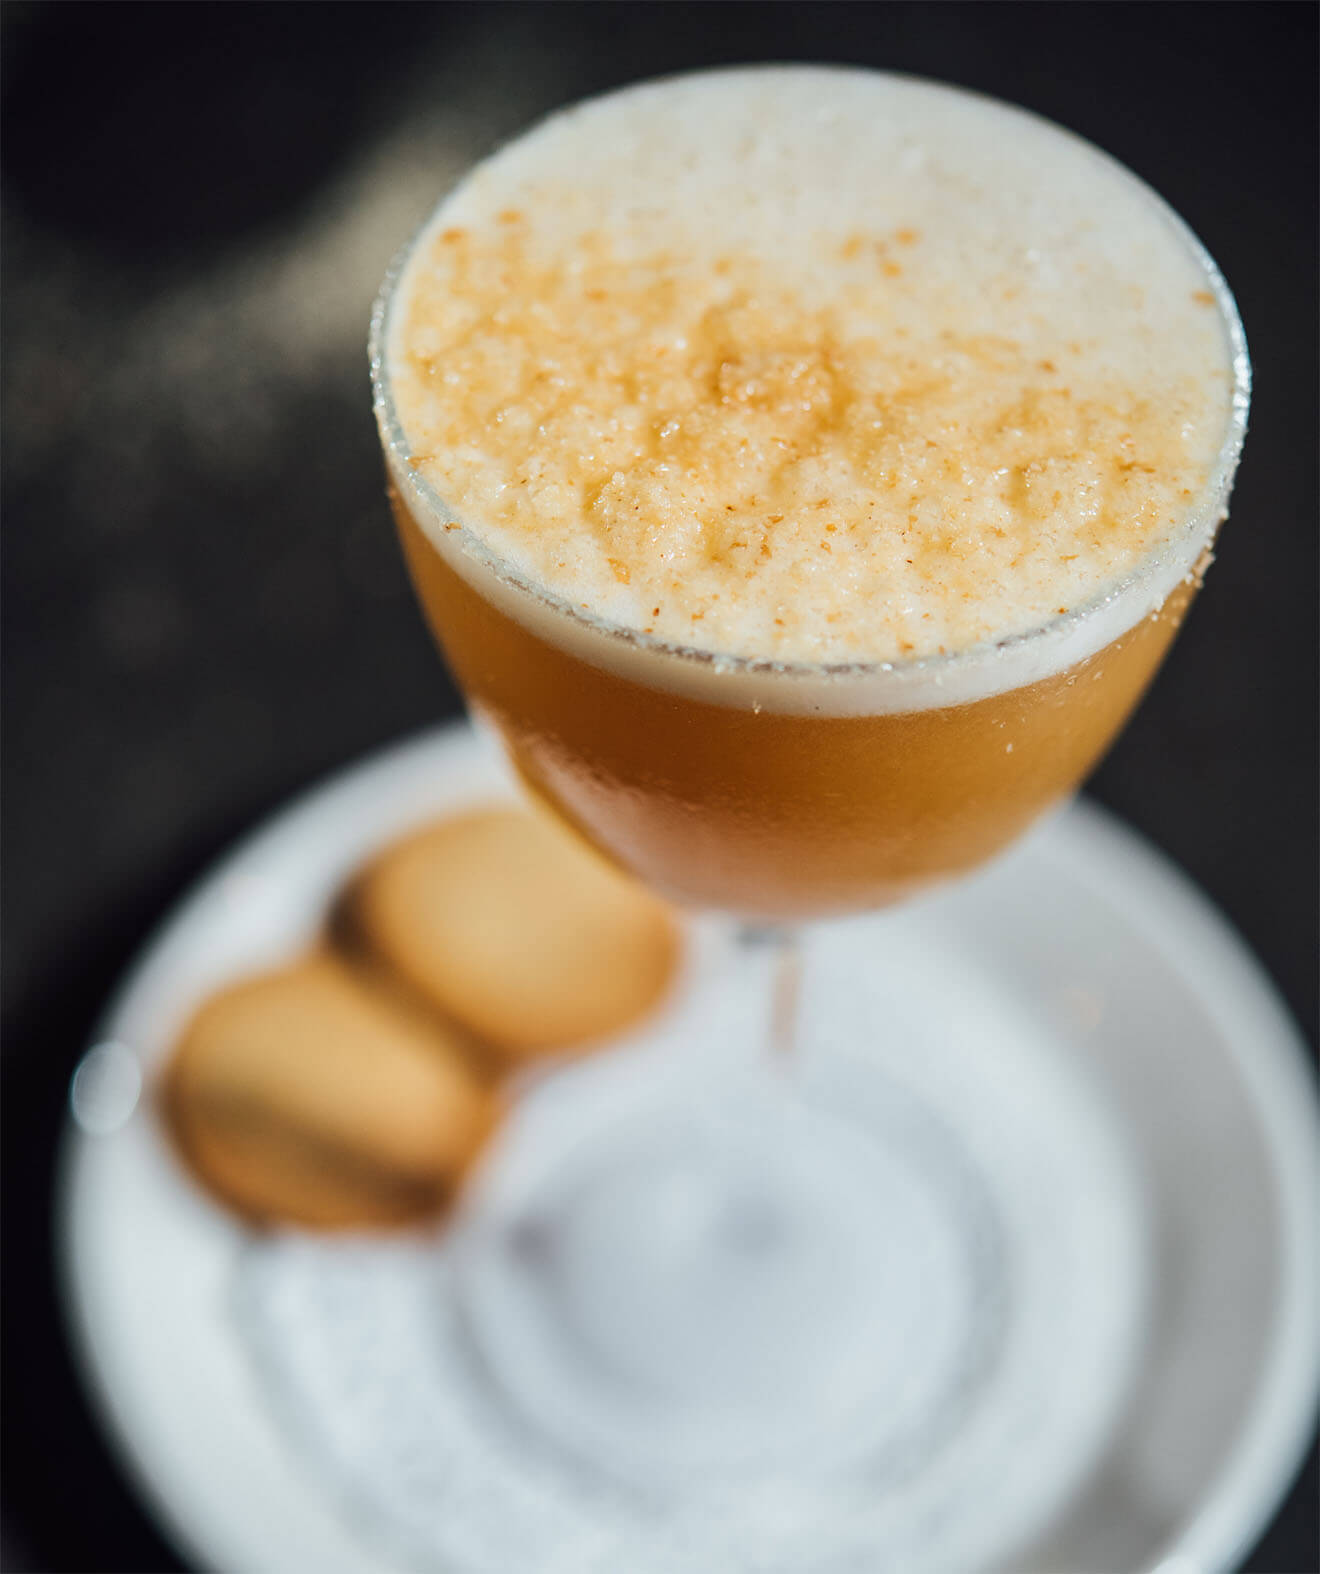 Tea & Biscuits, cocktail with biscuits